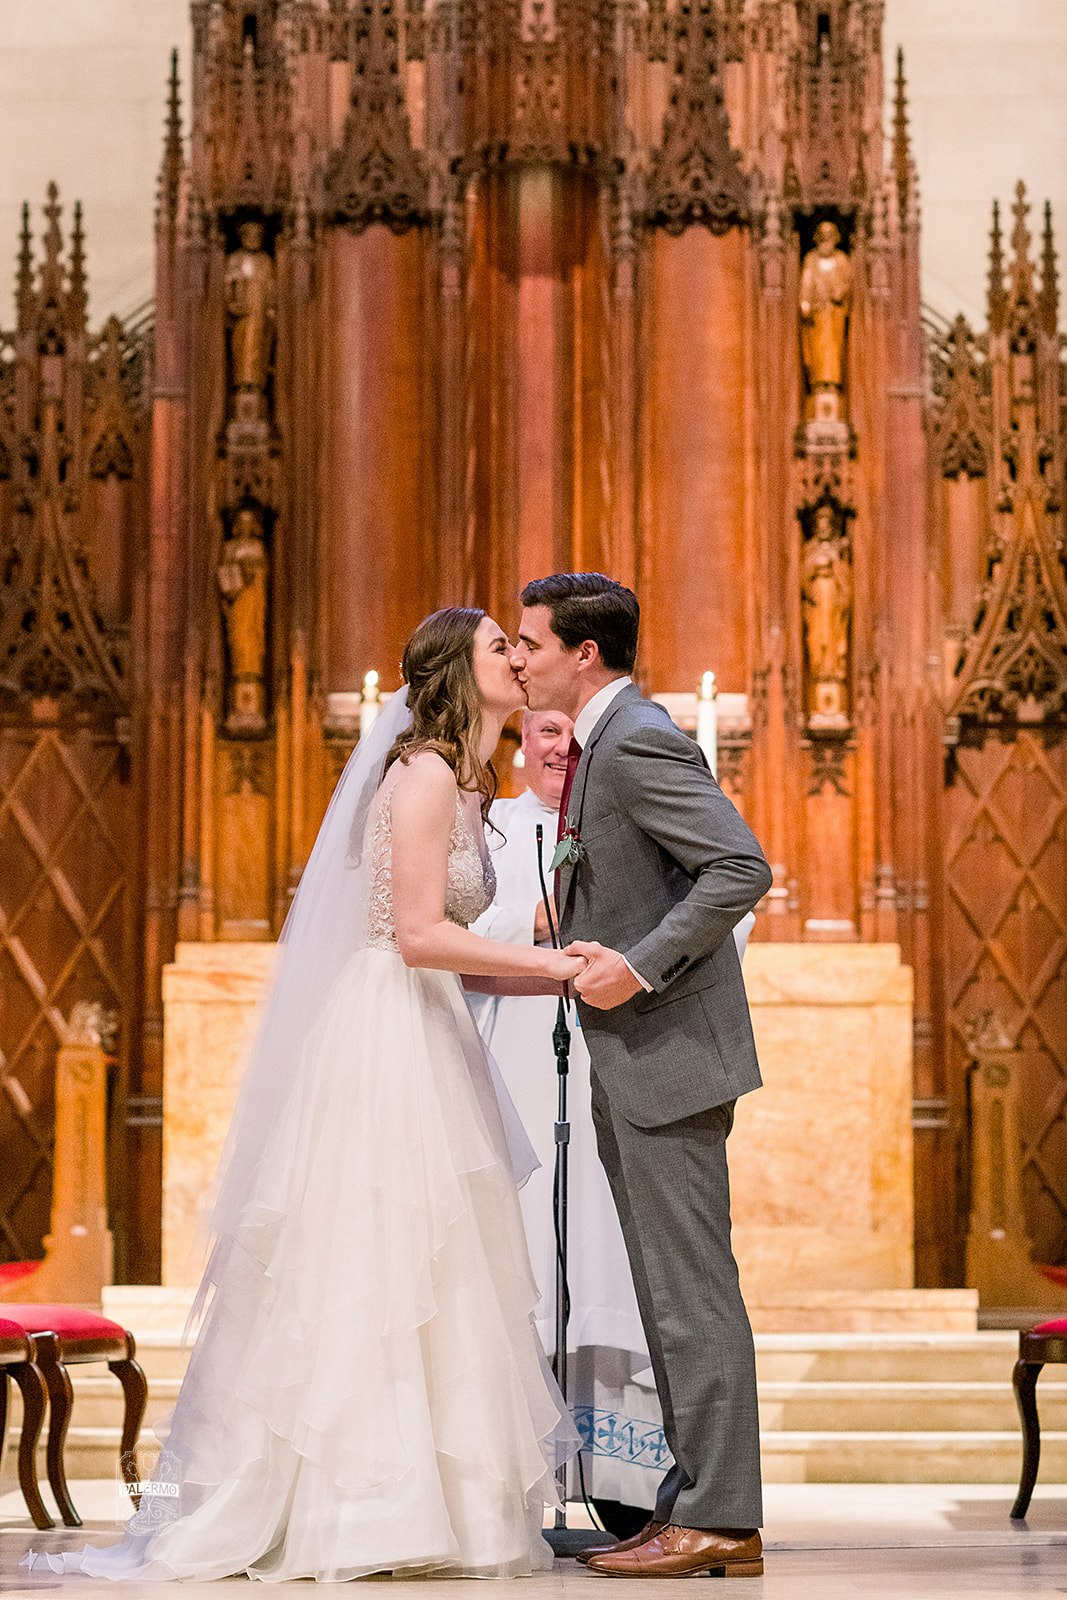 Bride and groom during wedding ceremony at Heinz Chapel in Pittsburgh, PA planned by Exhale Events. Find more wedding inspiration at exhale-events.com!